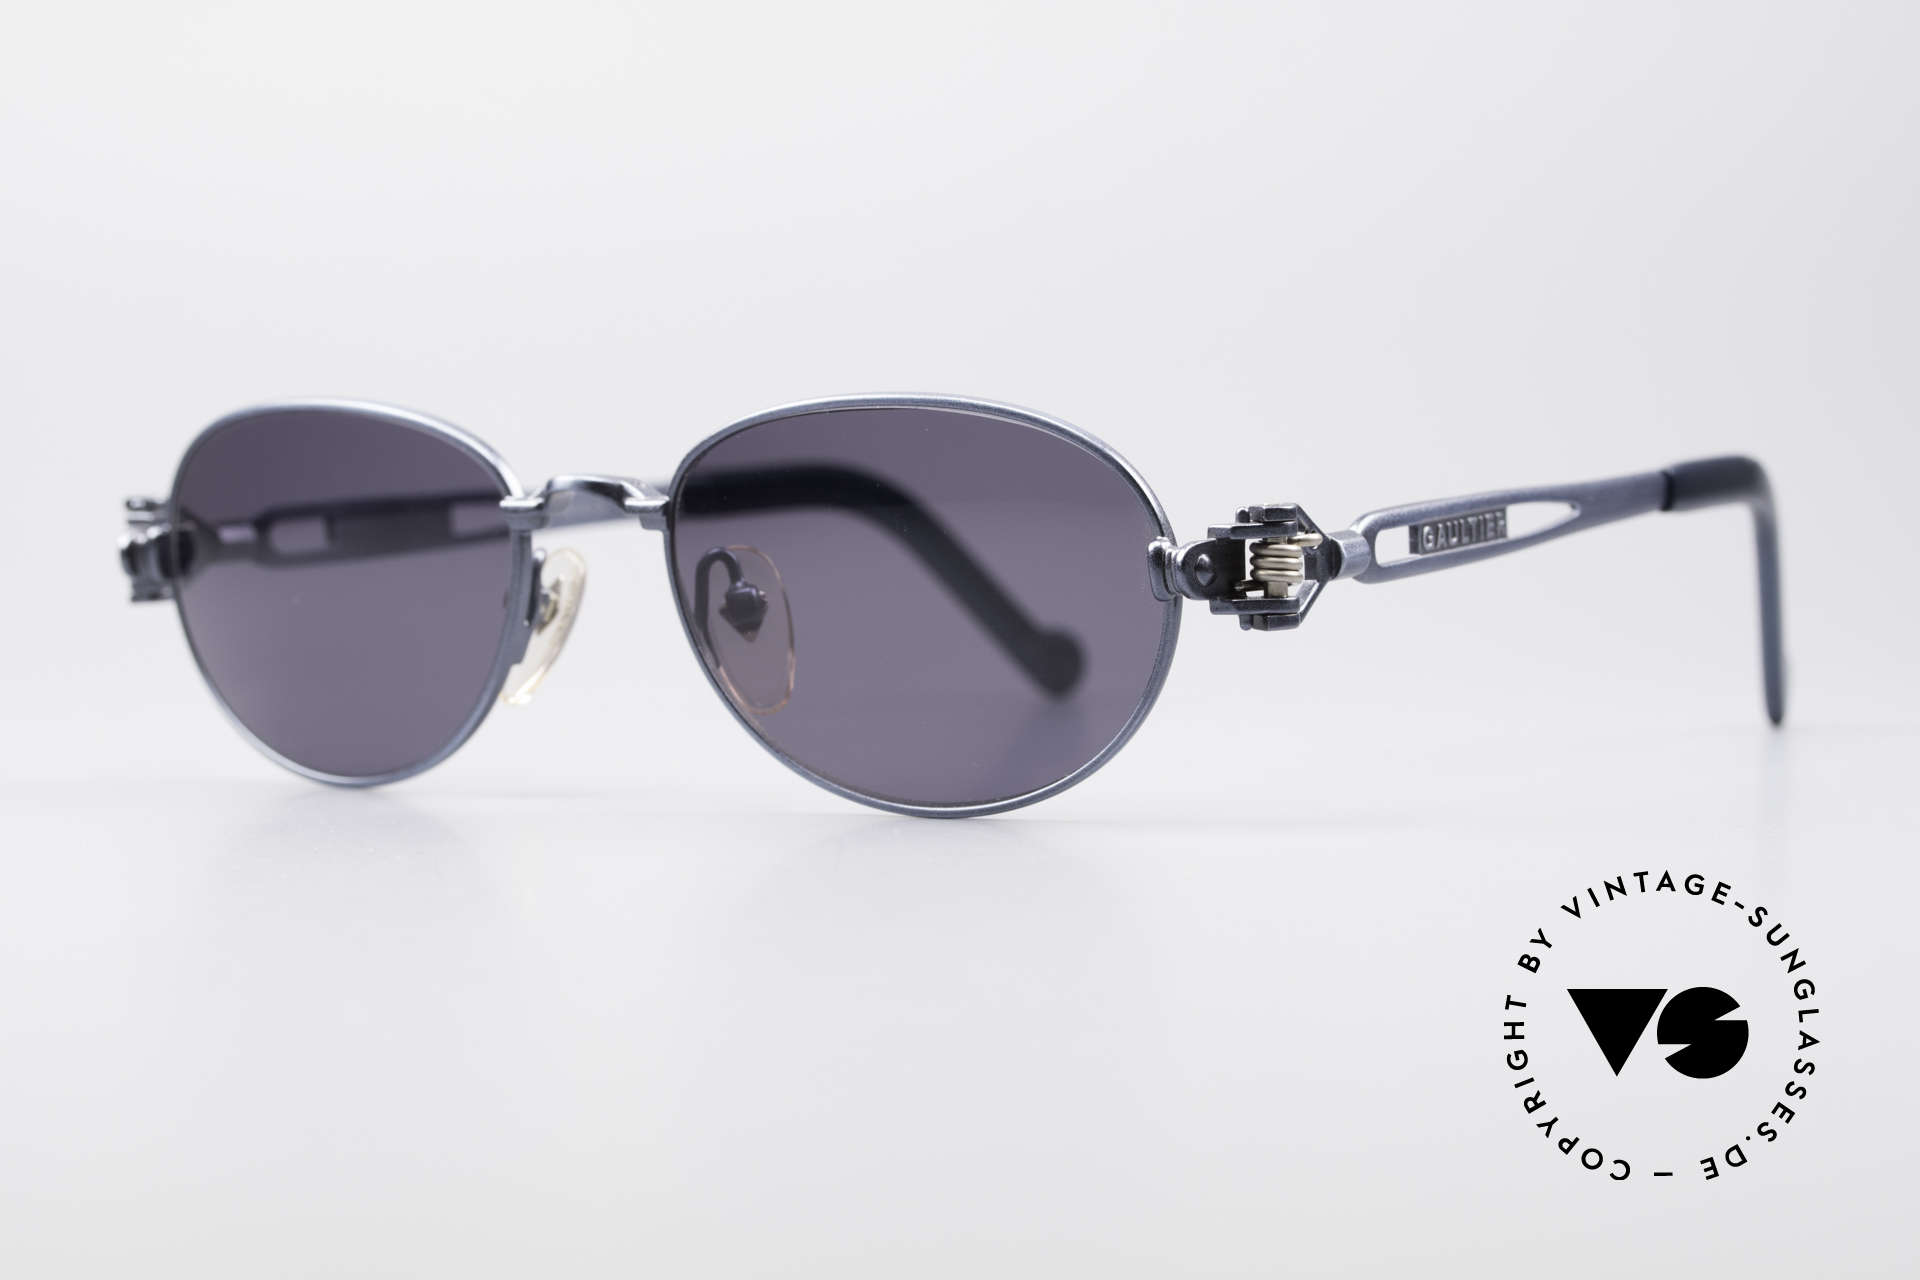 Jean Paul Gaultier 56-8102 Oval Industrial Sunglasses, frame with some mechanical components / details, Made for Men and Women